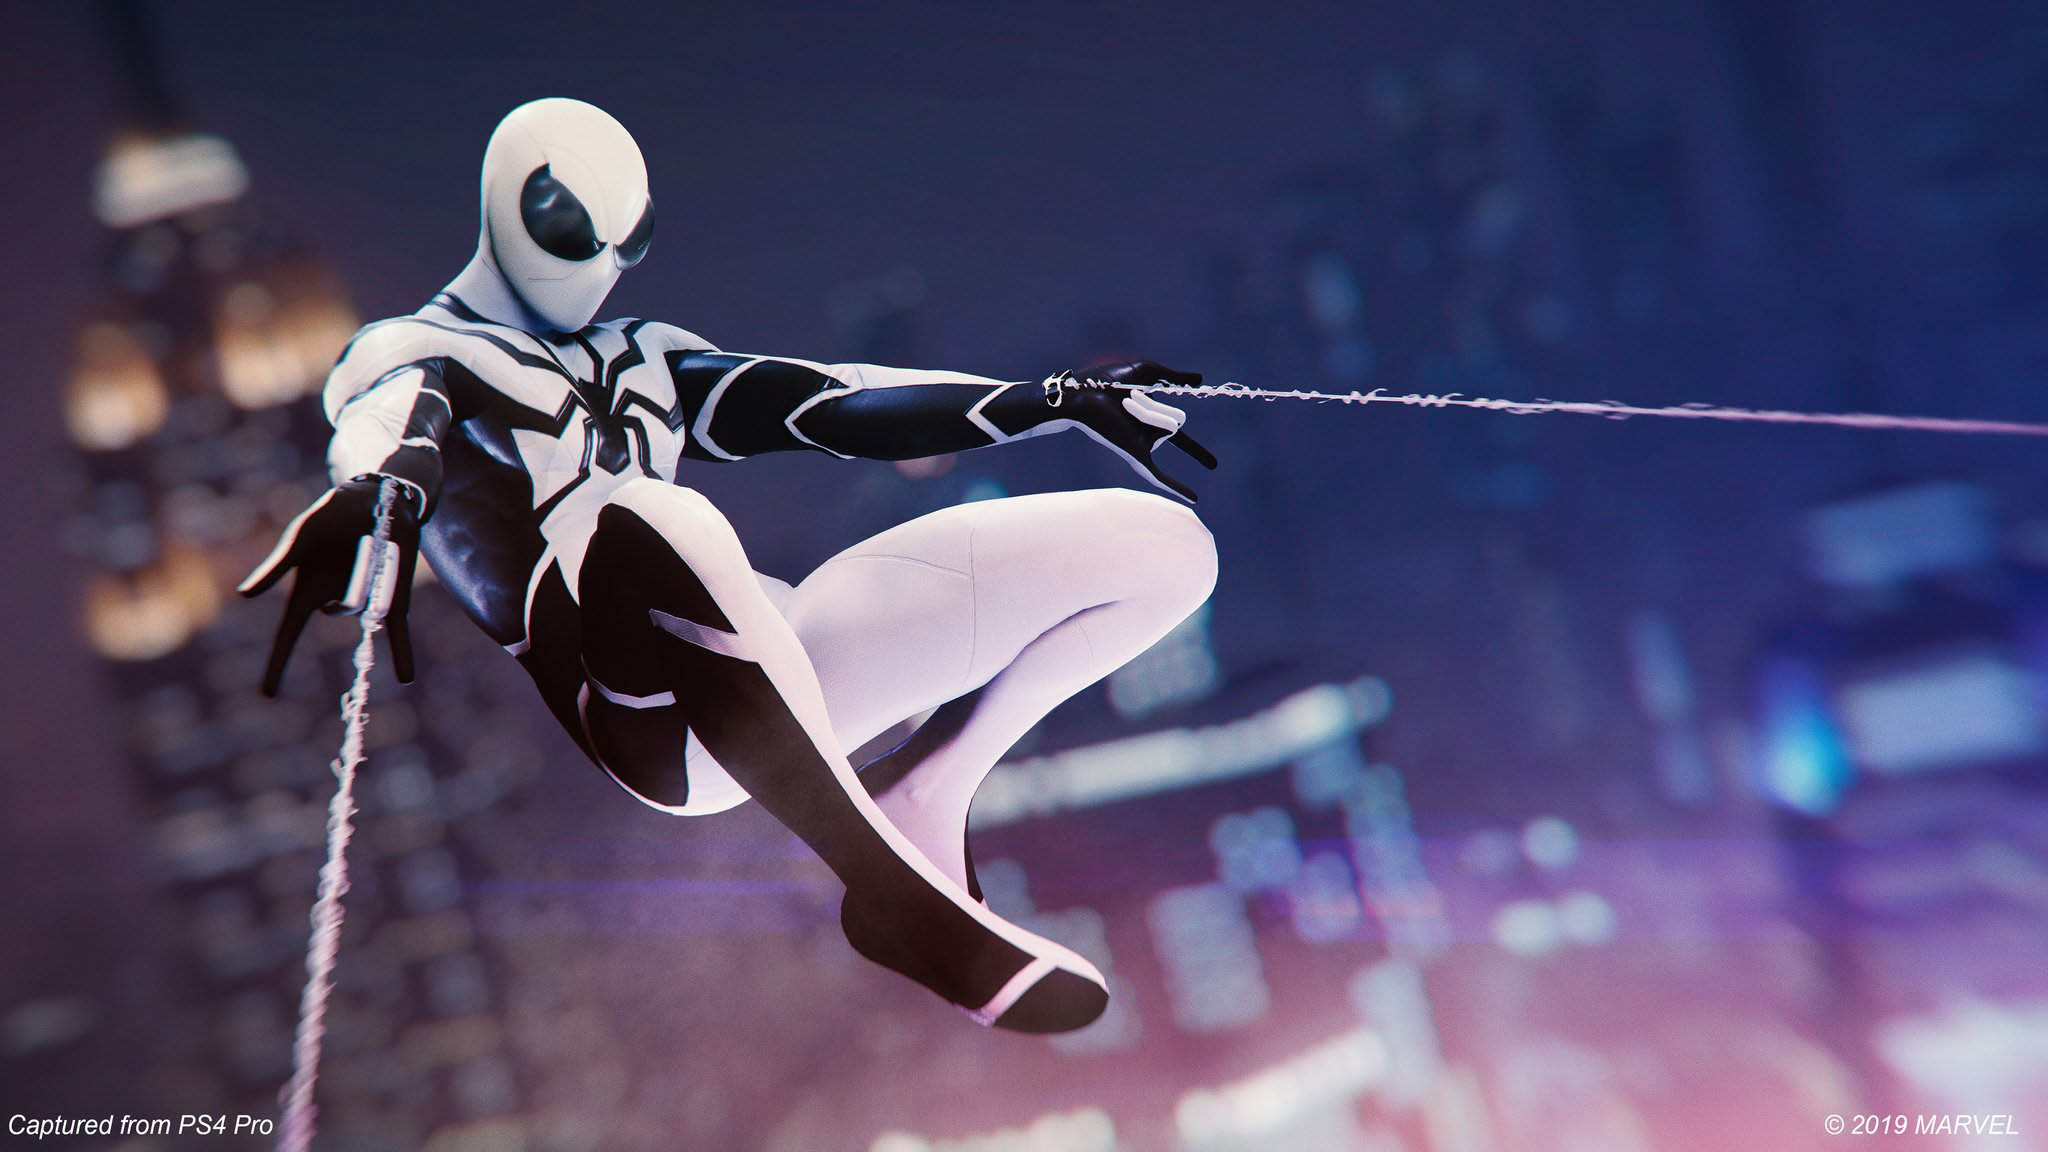 Spider-Man PS4 Gets Updated With Two More Costumes - Spider